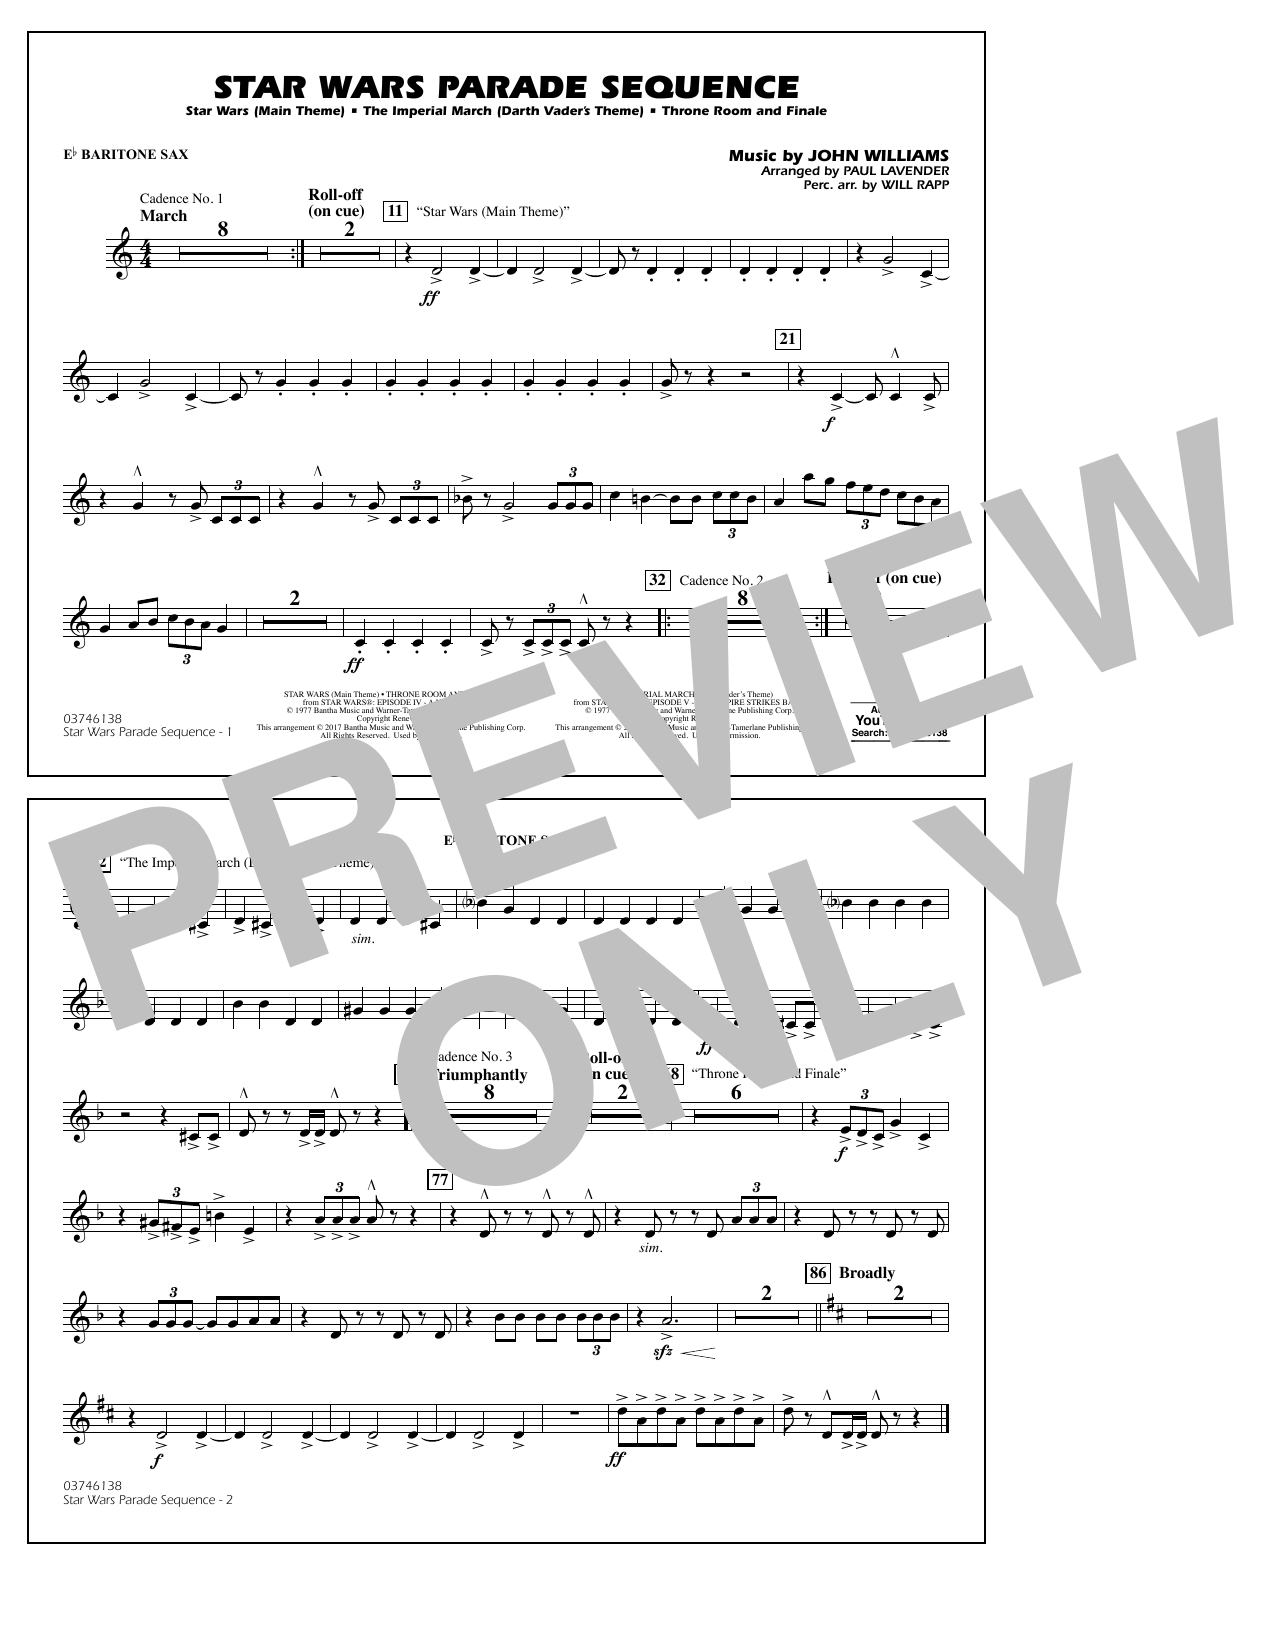 Paul Lavender Star Wars Parade Sequence - Eb Baritone Sax sheet music preview music notes and score for Marching Band including 1 page(s)